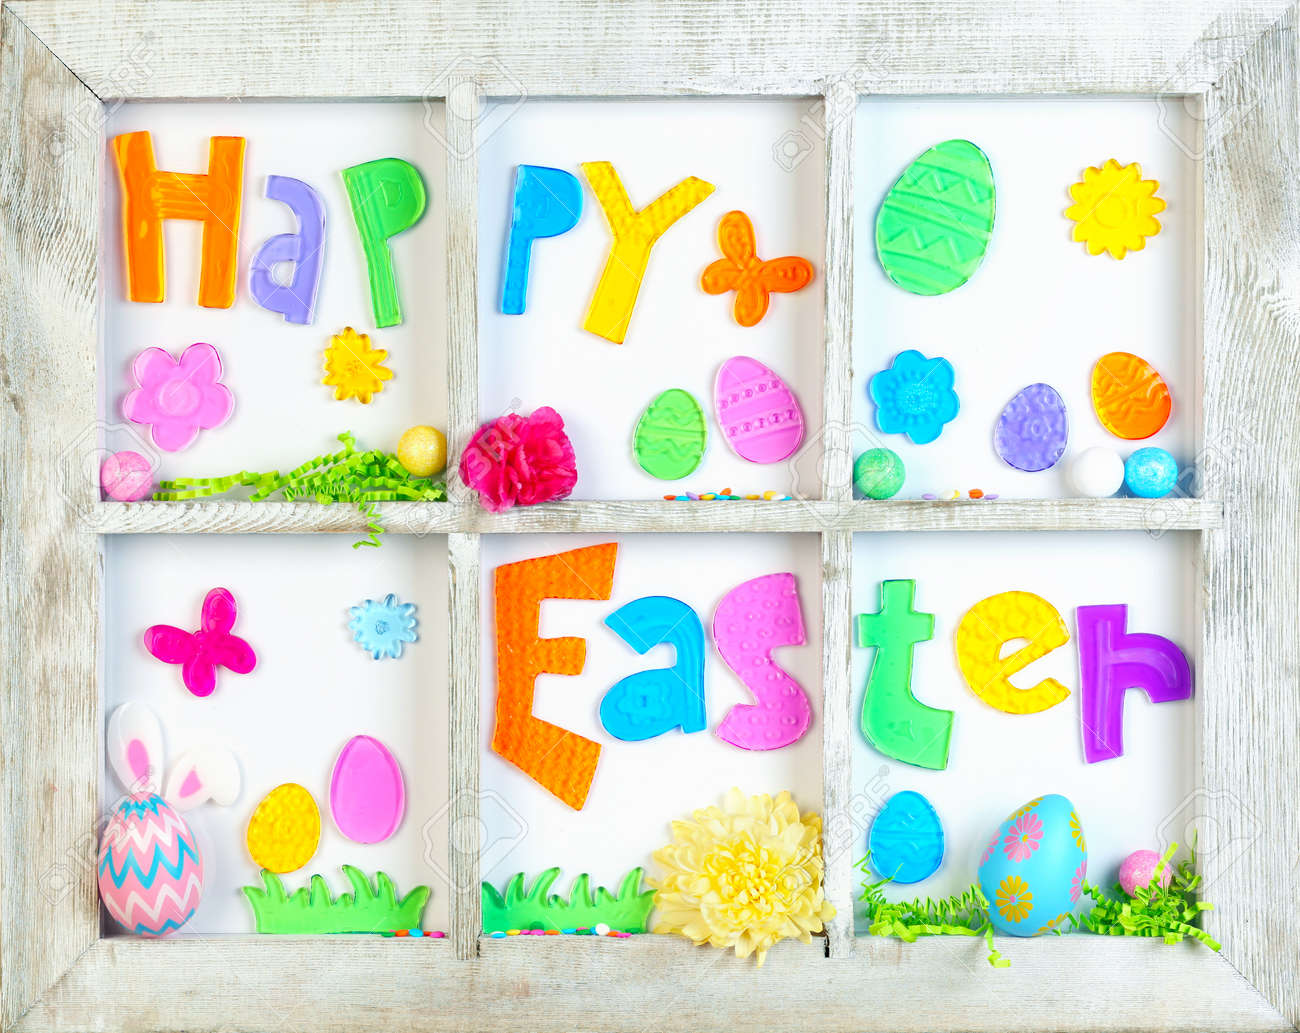 Happy Easter decorations in old wooden window - 165169597